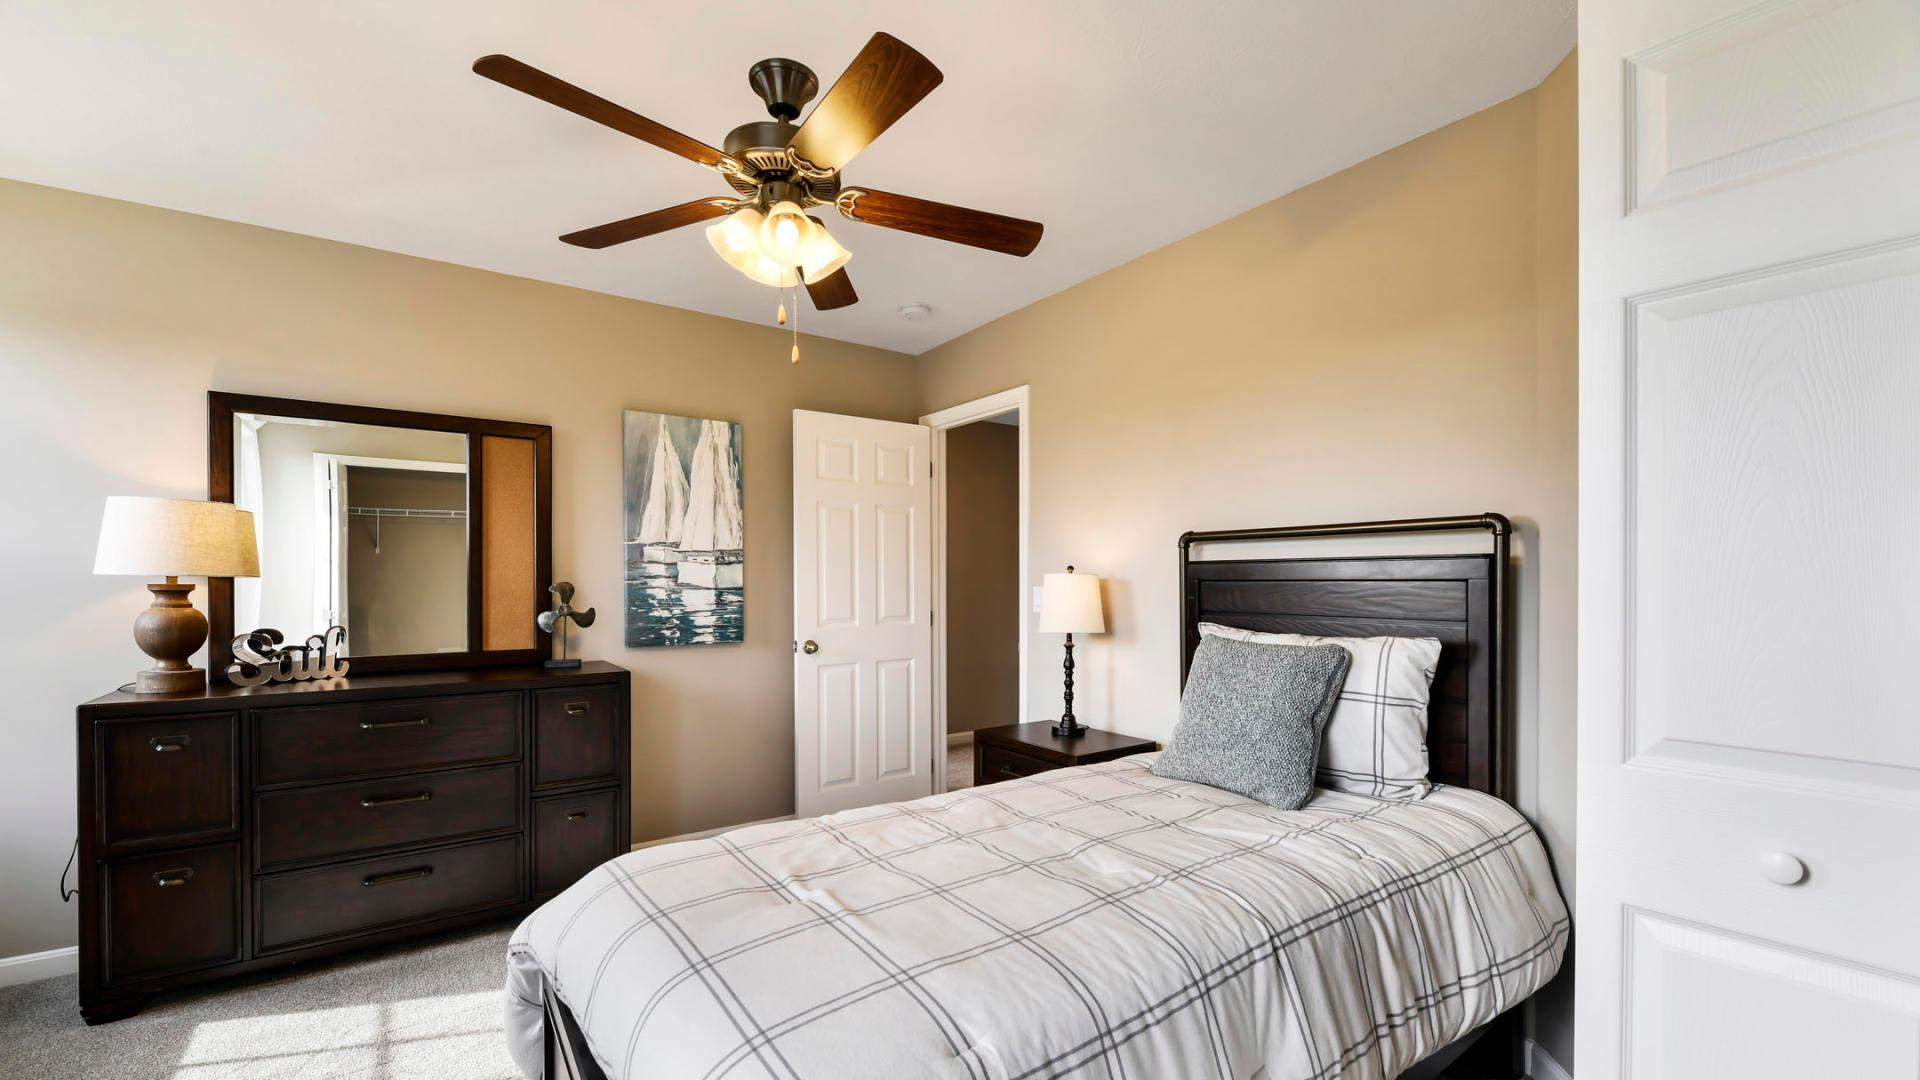 Bedroom featured in the Cheshire By Maronda Homes in Pittsburgh, PA